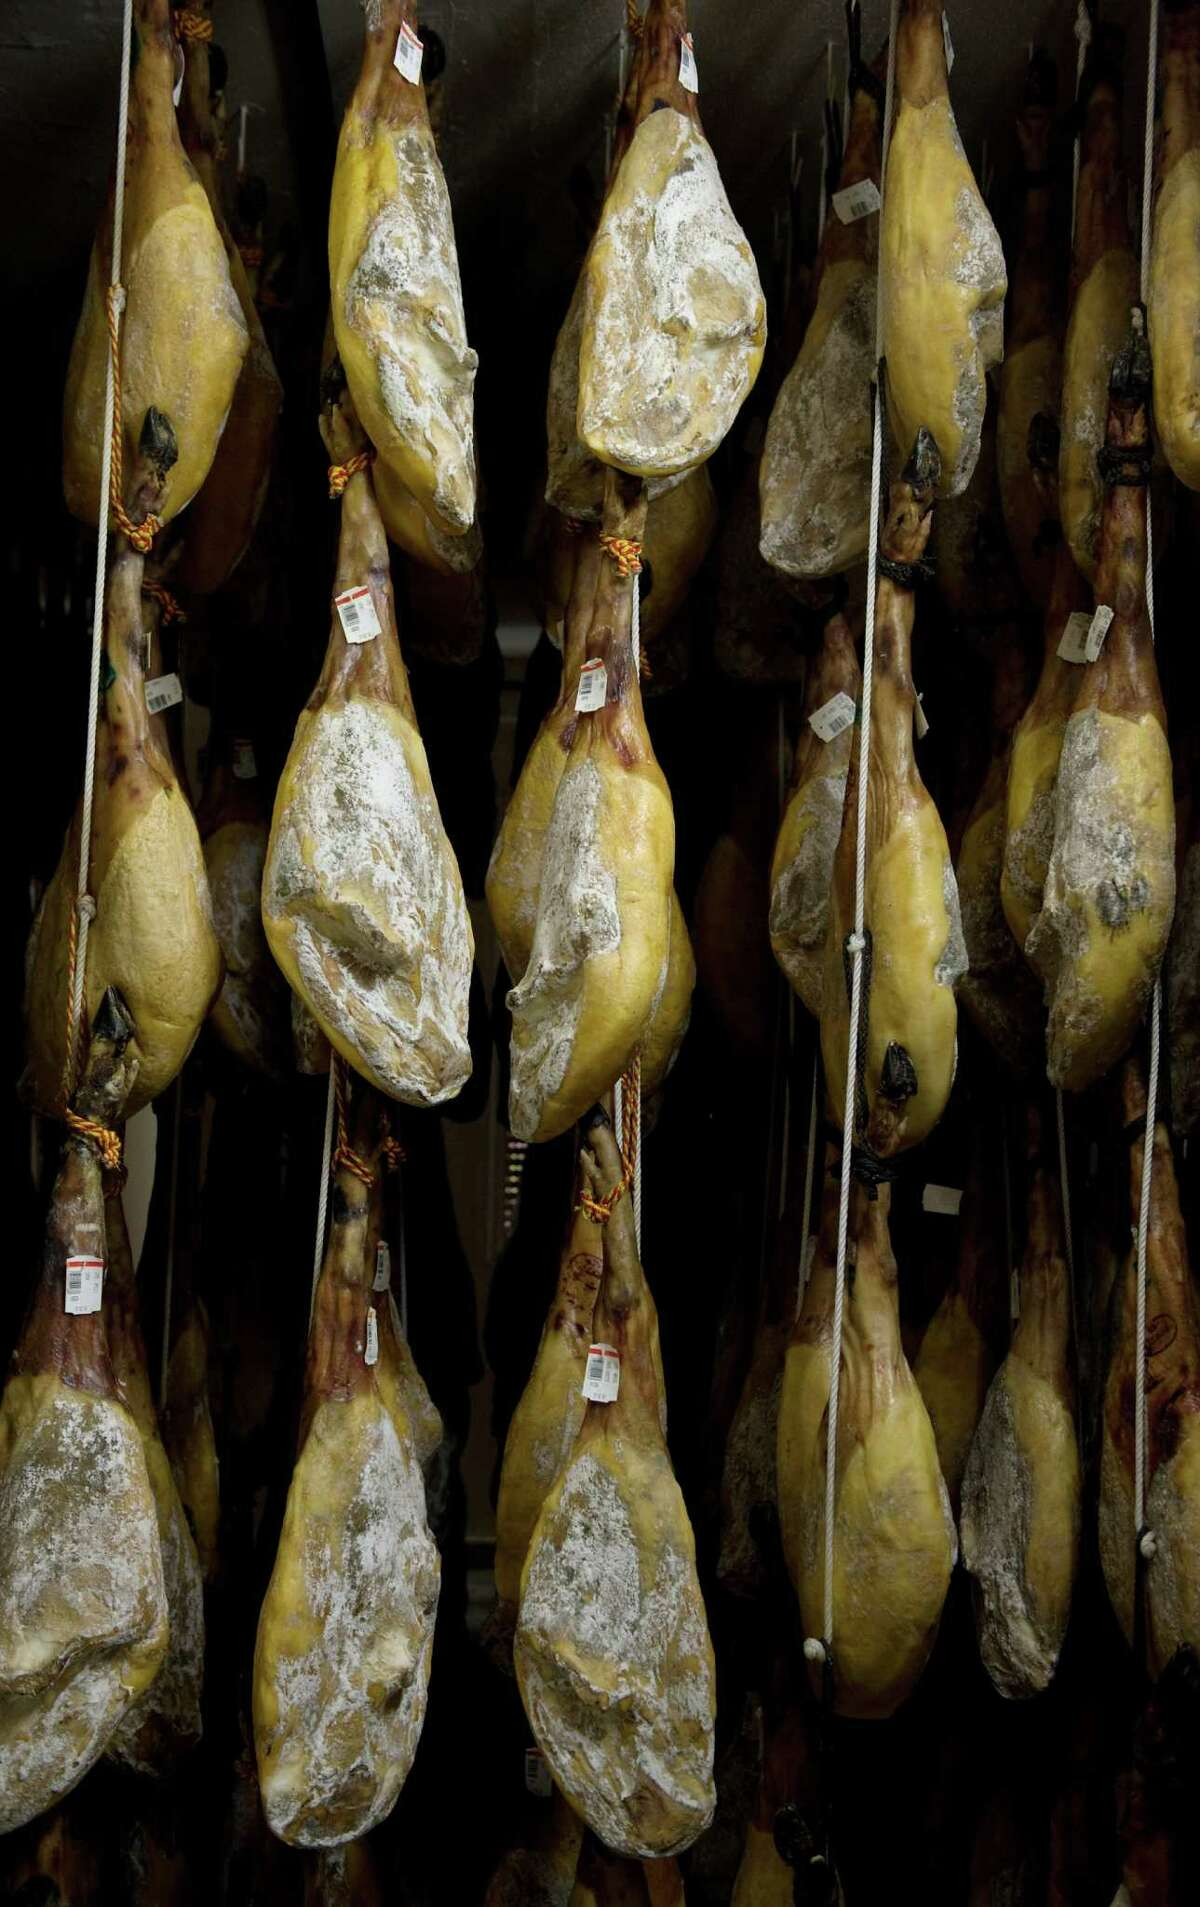 Jamón Ibérico de Bellota are usually dry-cured for up to three years after the pigs have been on a diet of acorns.